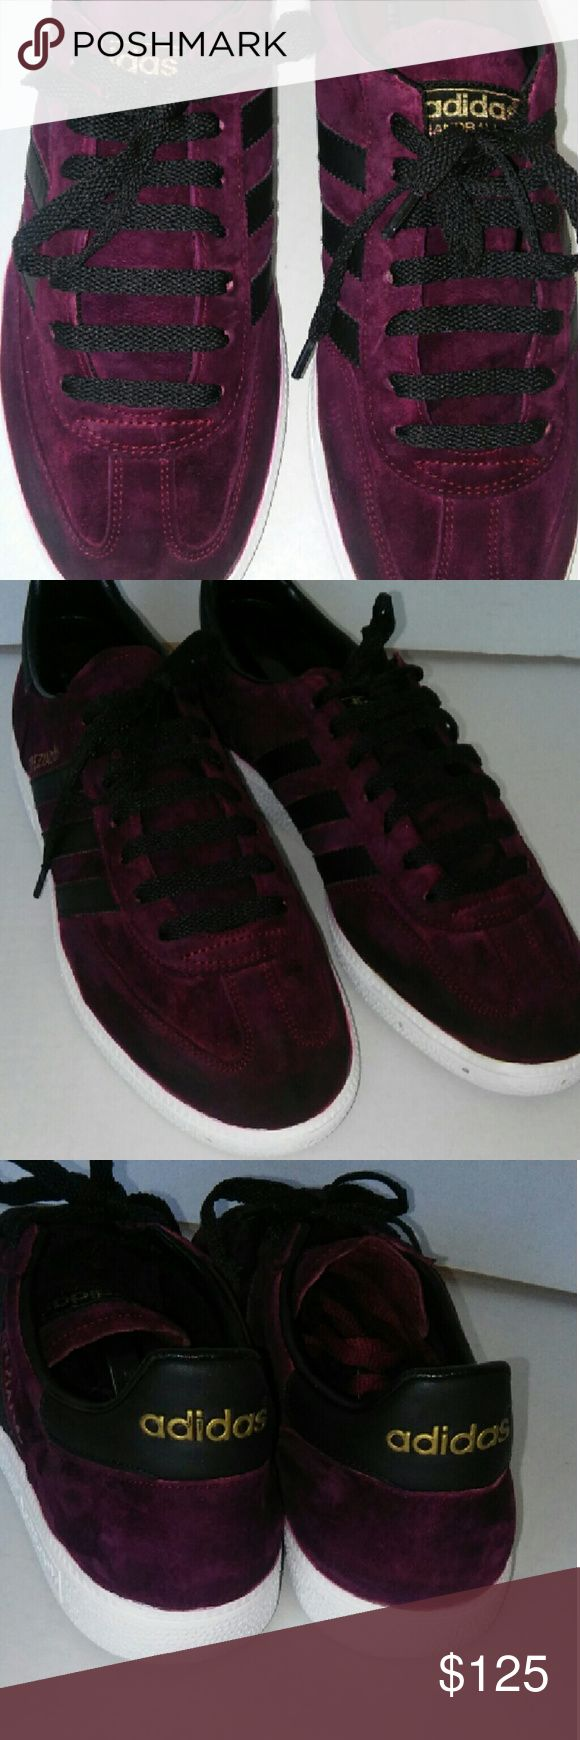 ADIDAS HANDBALL CUSTOM COLOR,  PLUM! ! These are a pair of 9.5 adidas handball, custom color, plum and gold, game!!!, nobody got this color adidas  Shoes Sneakers